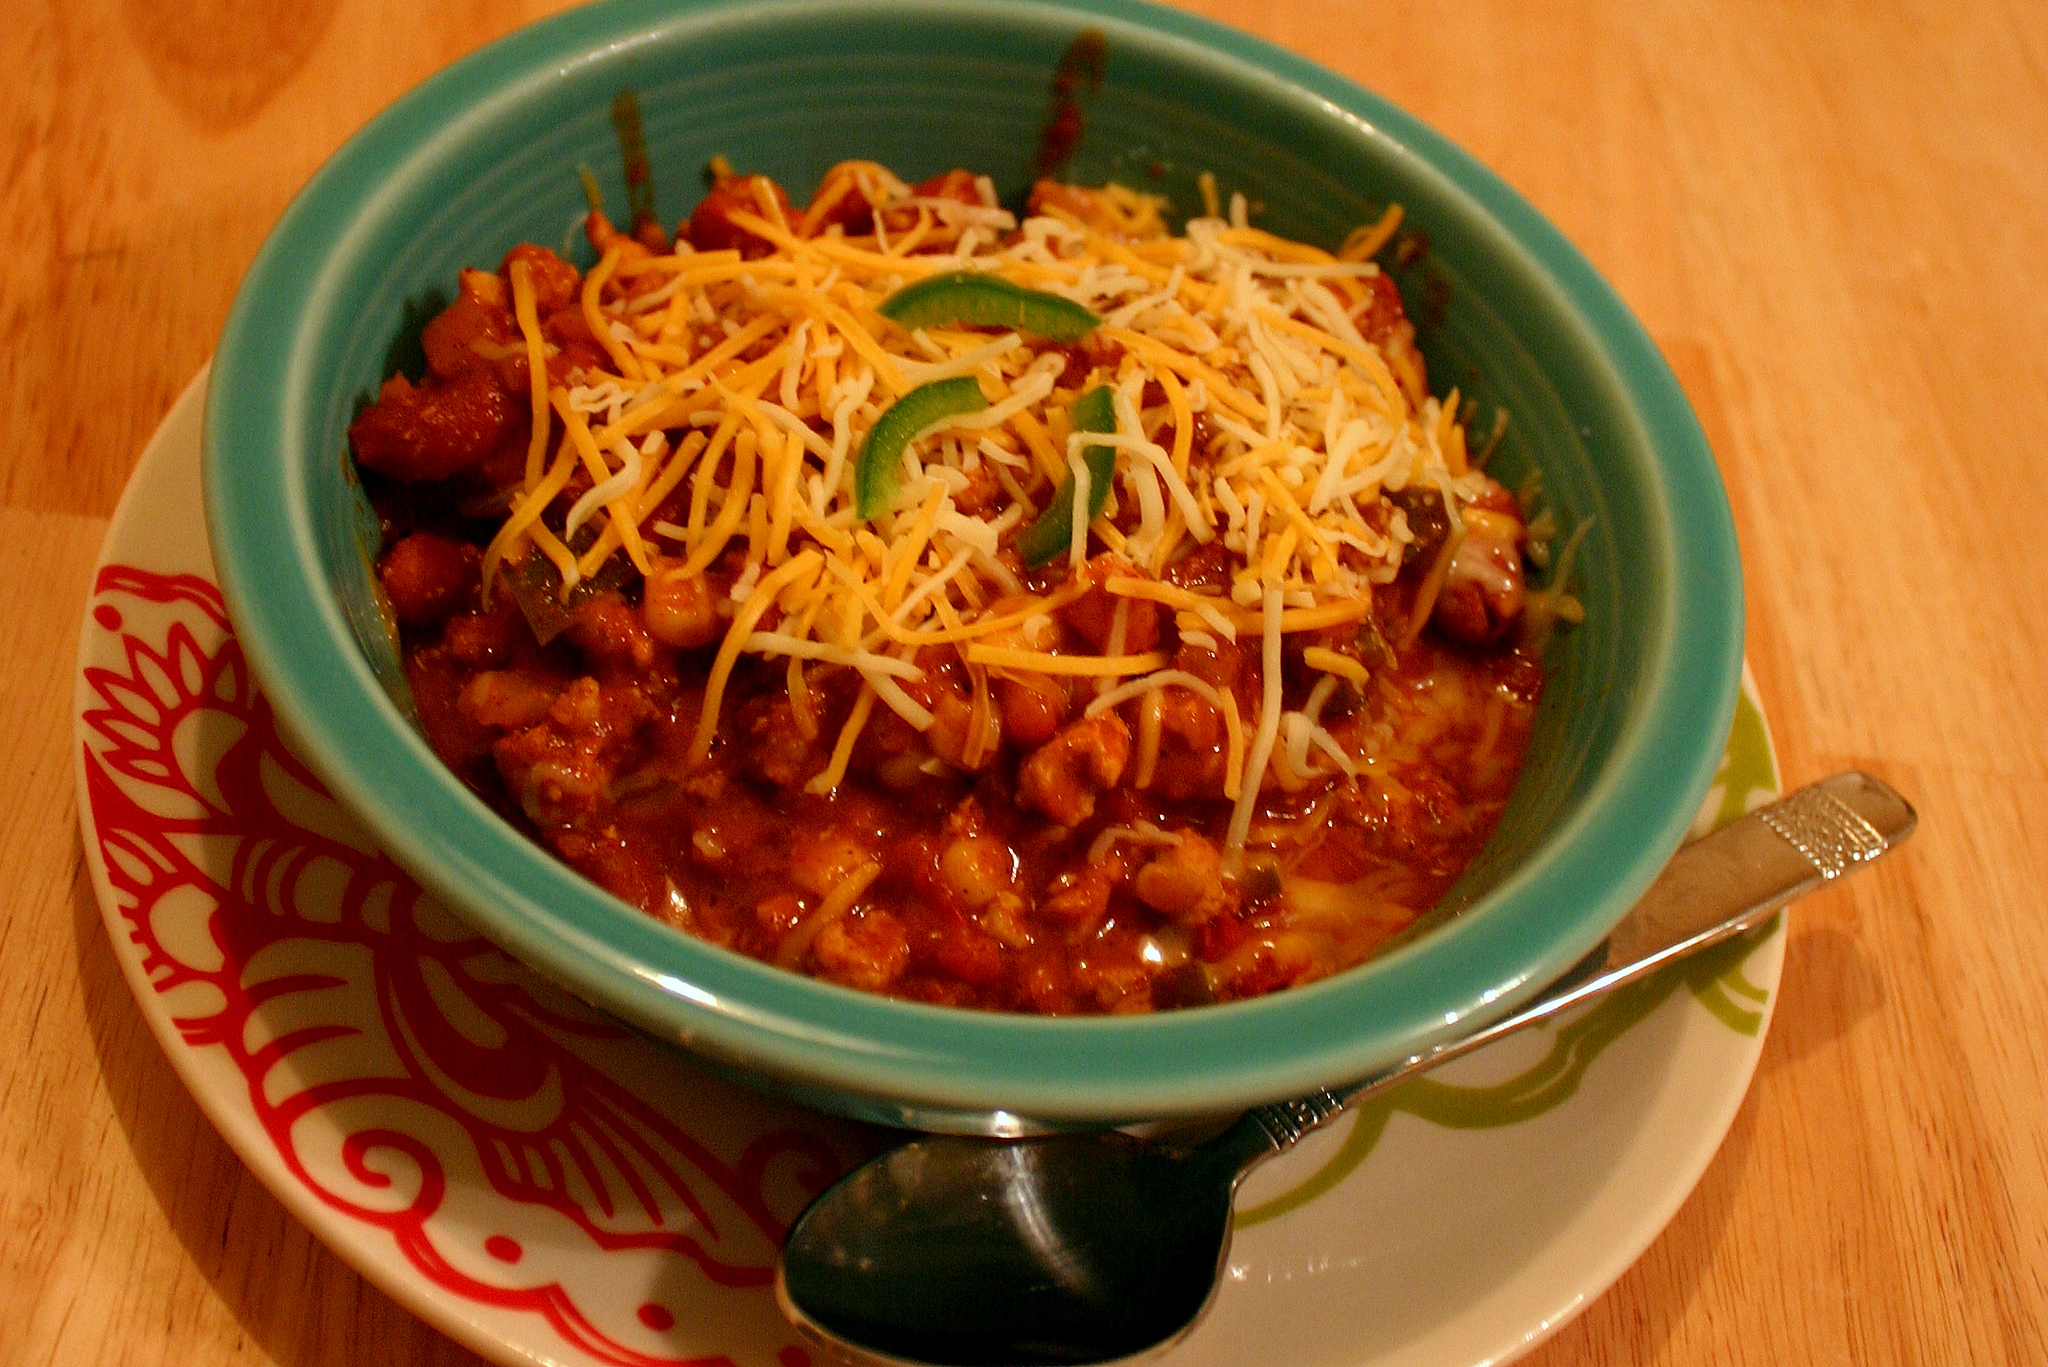 Chili Recipe Crock Pot Easy Beef With Beans Vegetarian Photos Pics Images Boilermaker Chili Recipe Chili Recipe Crock Pot Easy Beef With Beans Vegetarian Photos Pics Images